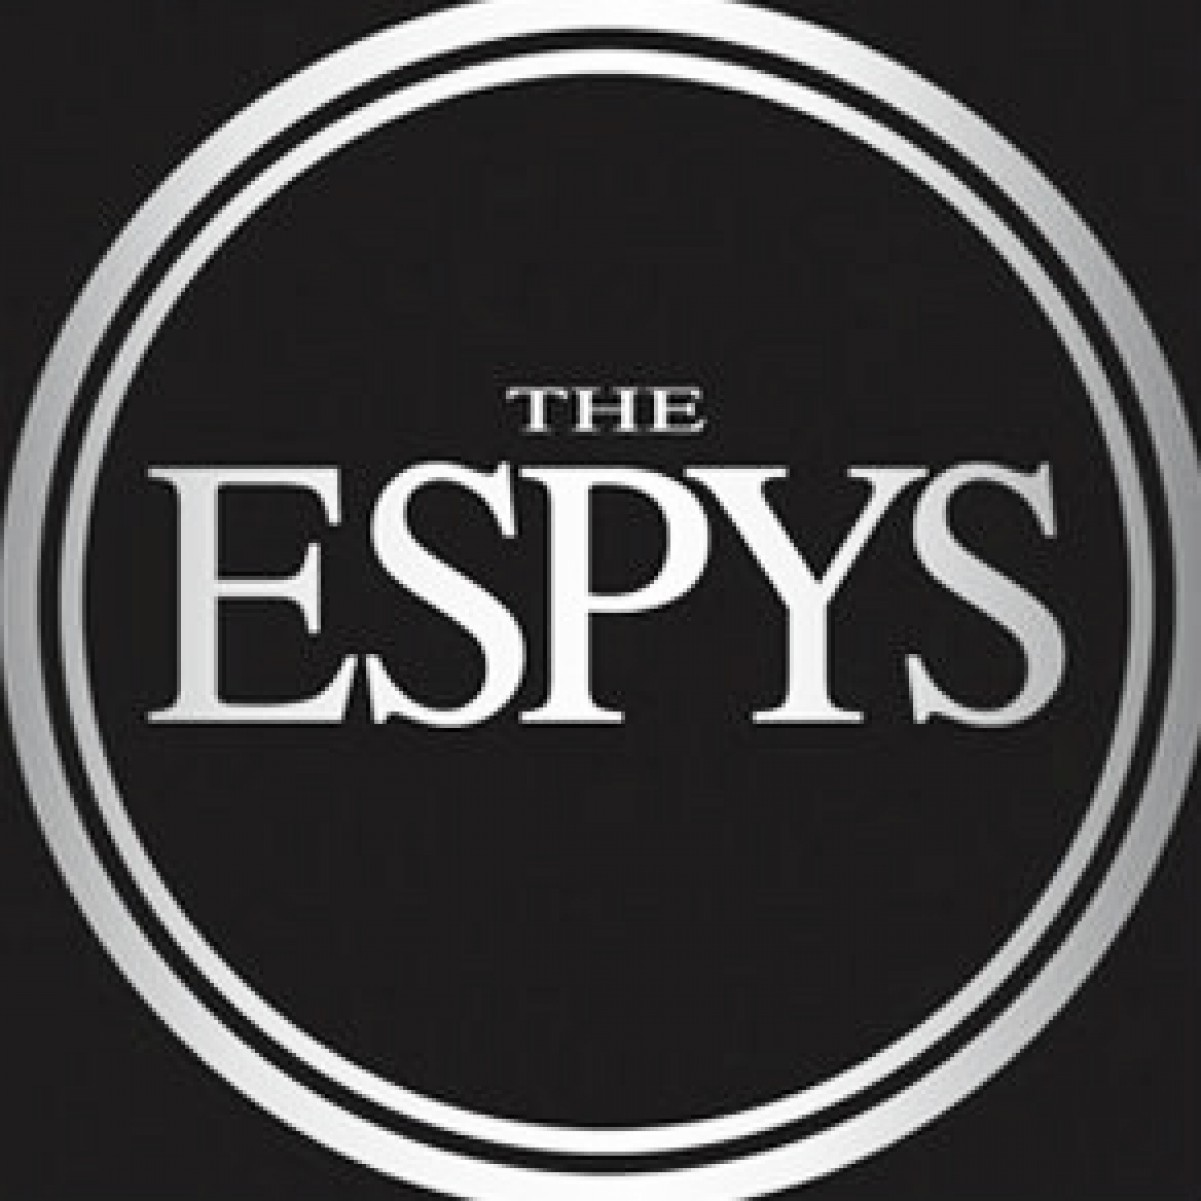 NWSL News Roundup: ESPYs and waivers are the talk of the week